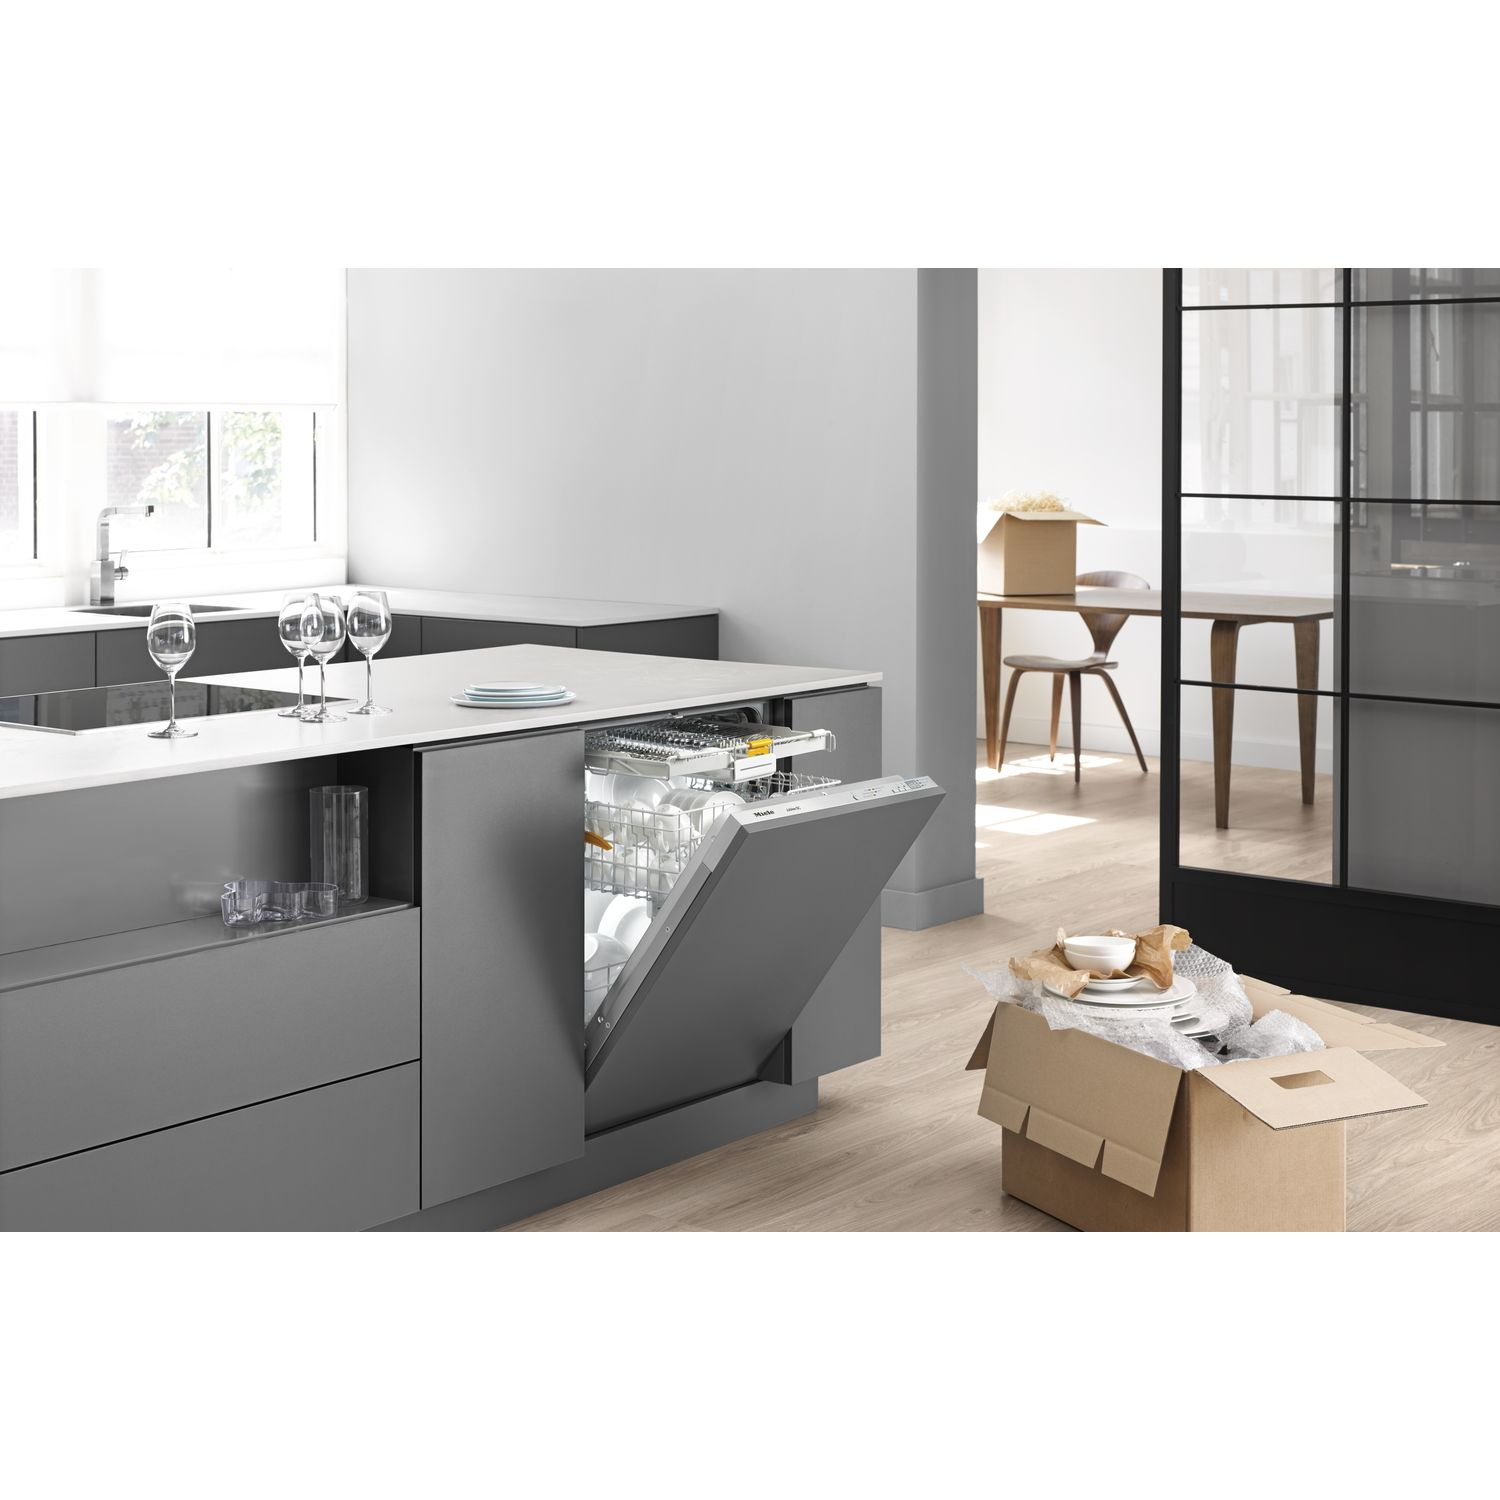 miele geschirrsp ler g 4990 scvi vollintegriert nische 600 mm. Black Bedroom Furniture Sets. Home Design Ideas